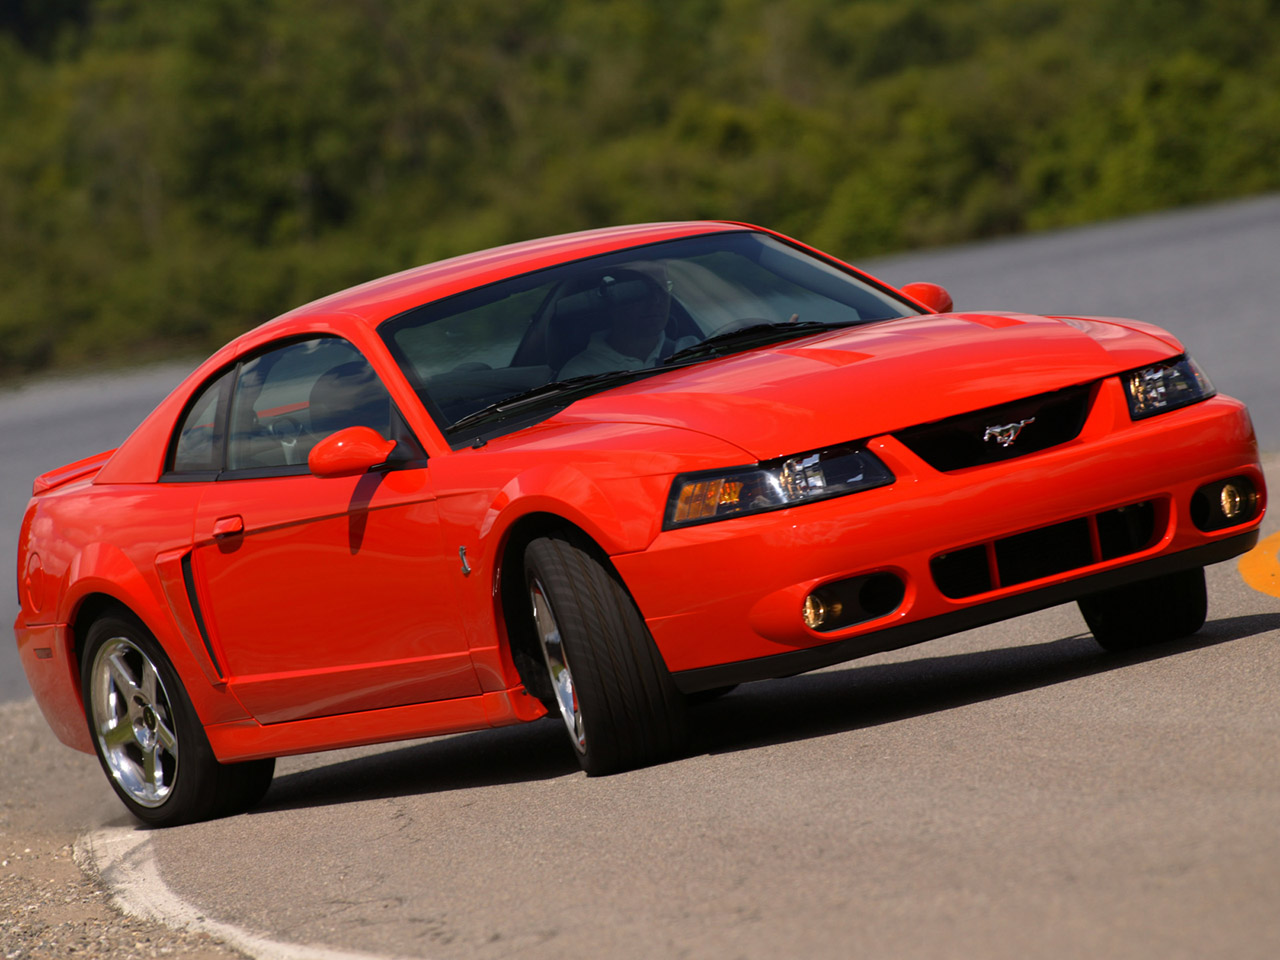 Ford Mustang 2004 #1